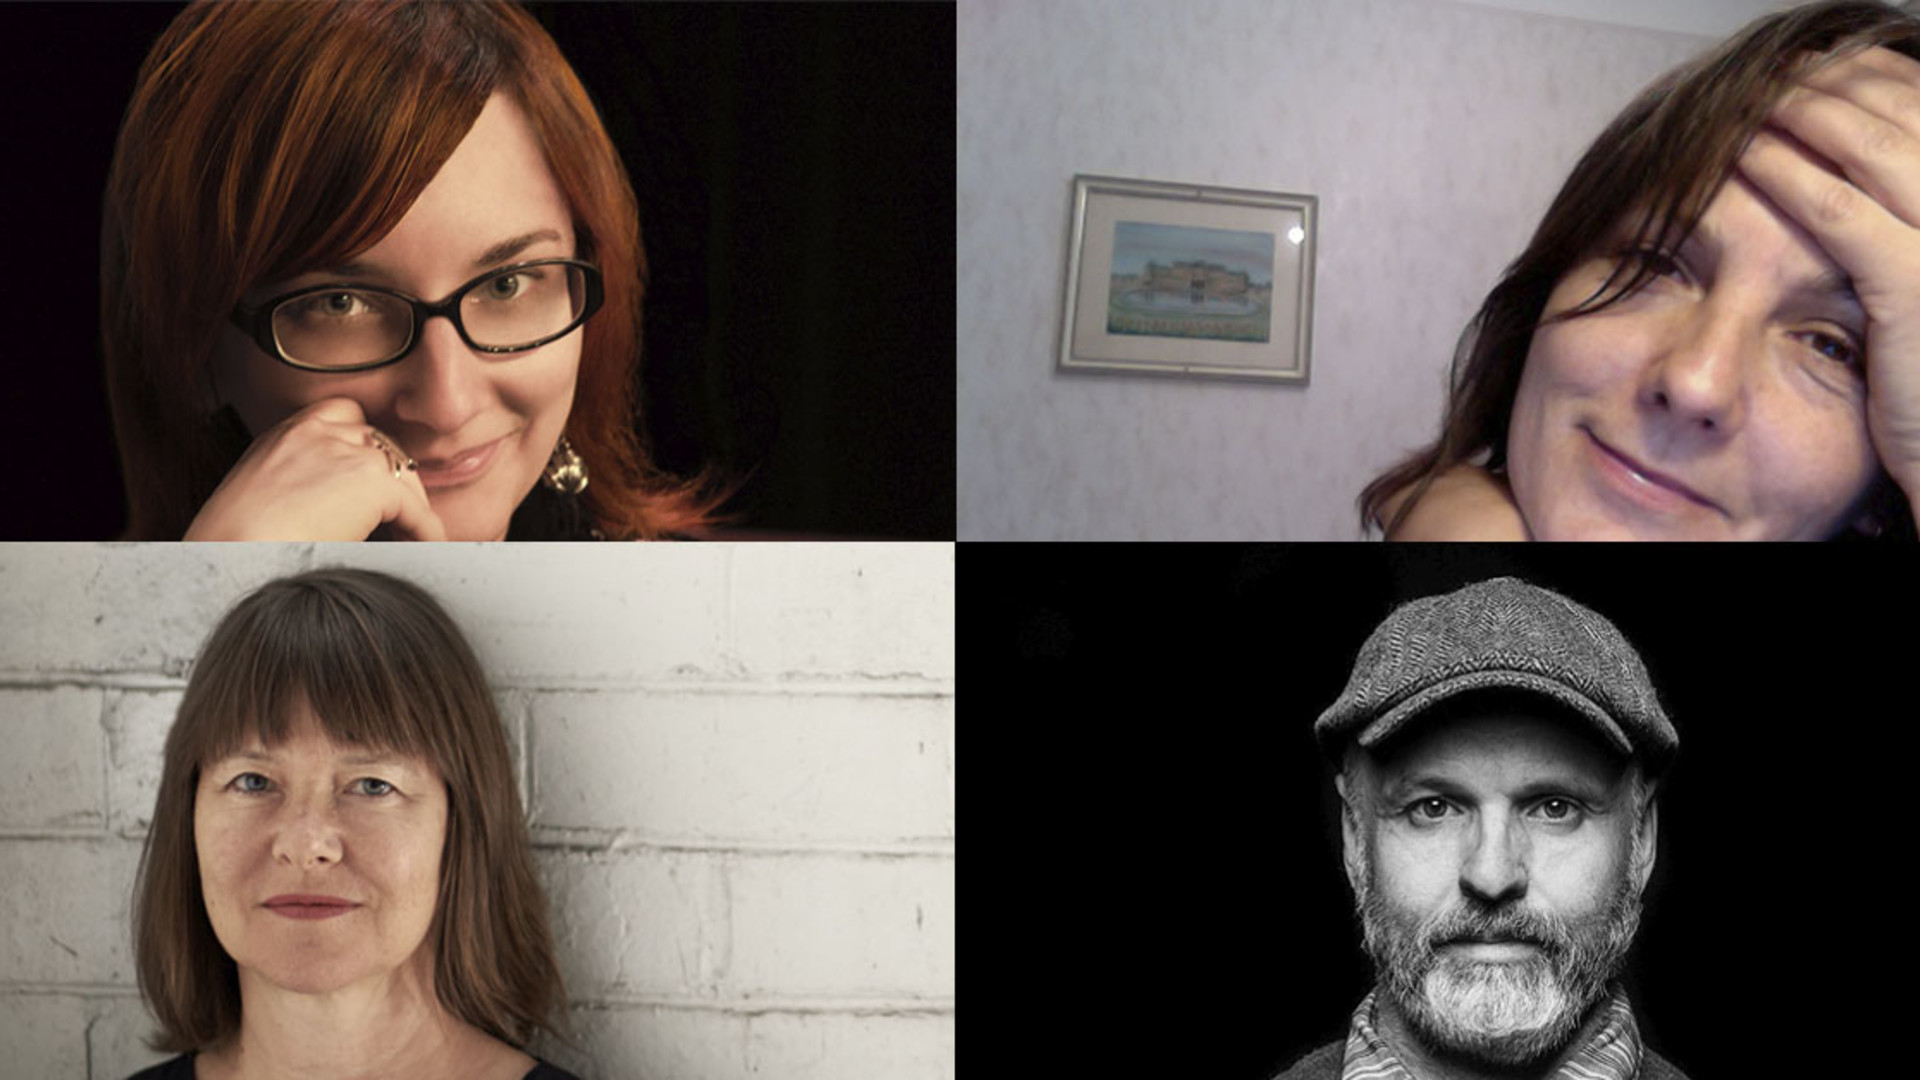 A collaged image of four close-up headshots, three women and one man. Clockwise from top left: Angela Conquet, Rebecca Hilton, Phillip Adams and Lucy Guerin